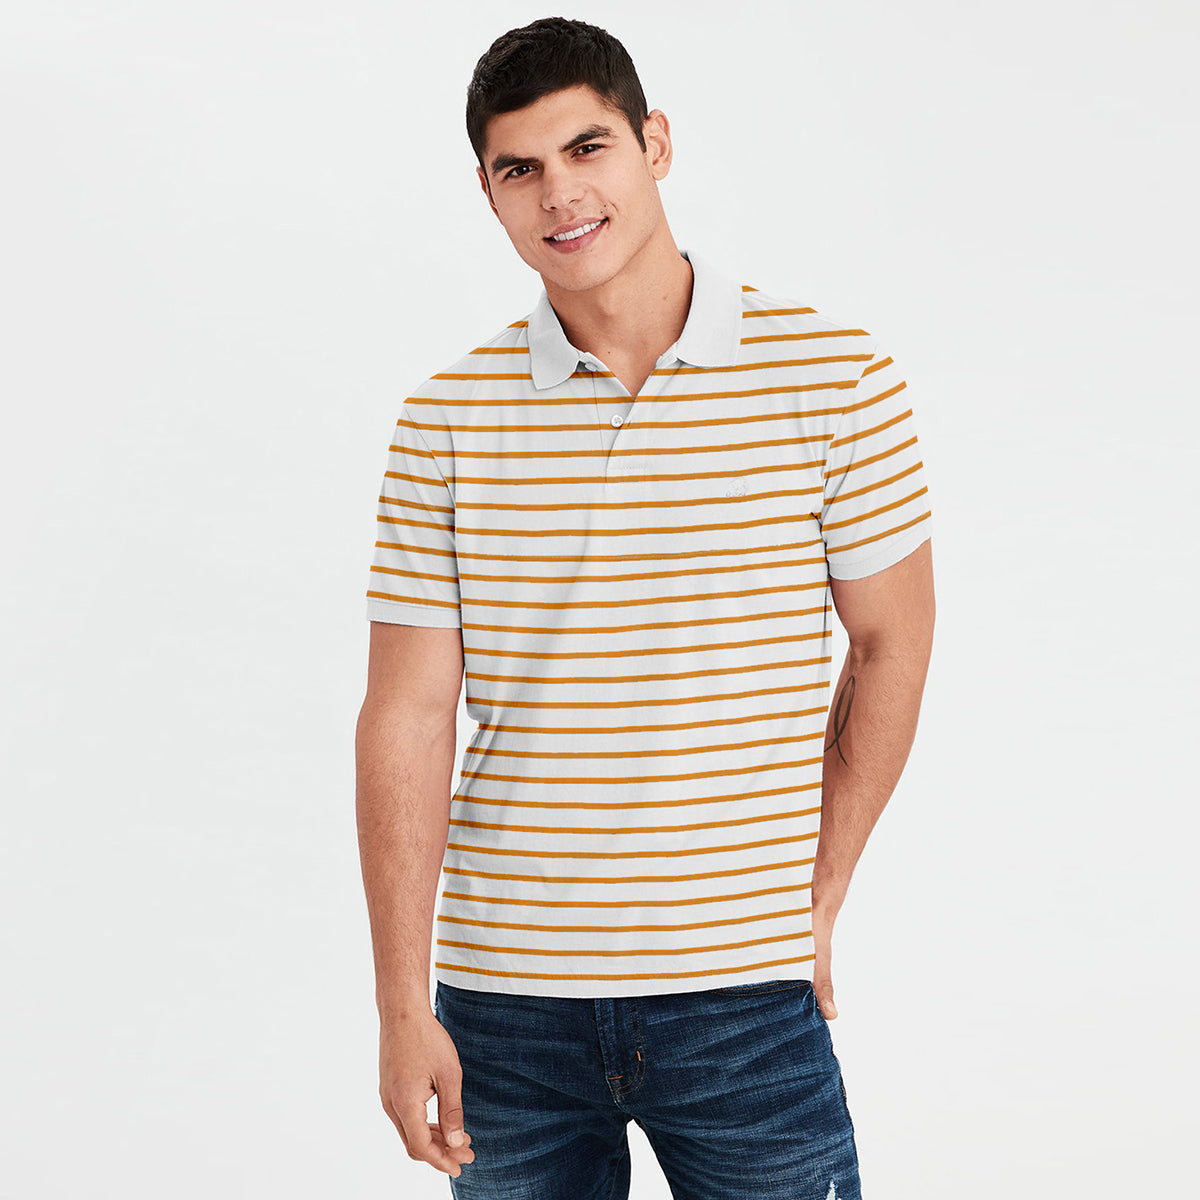 brandsego - Banana Republic Short Sleeve P.Q Polo Shirt For Men-NA7979